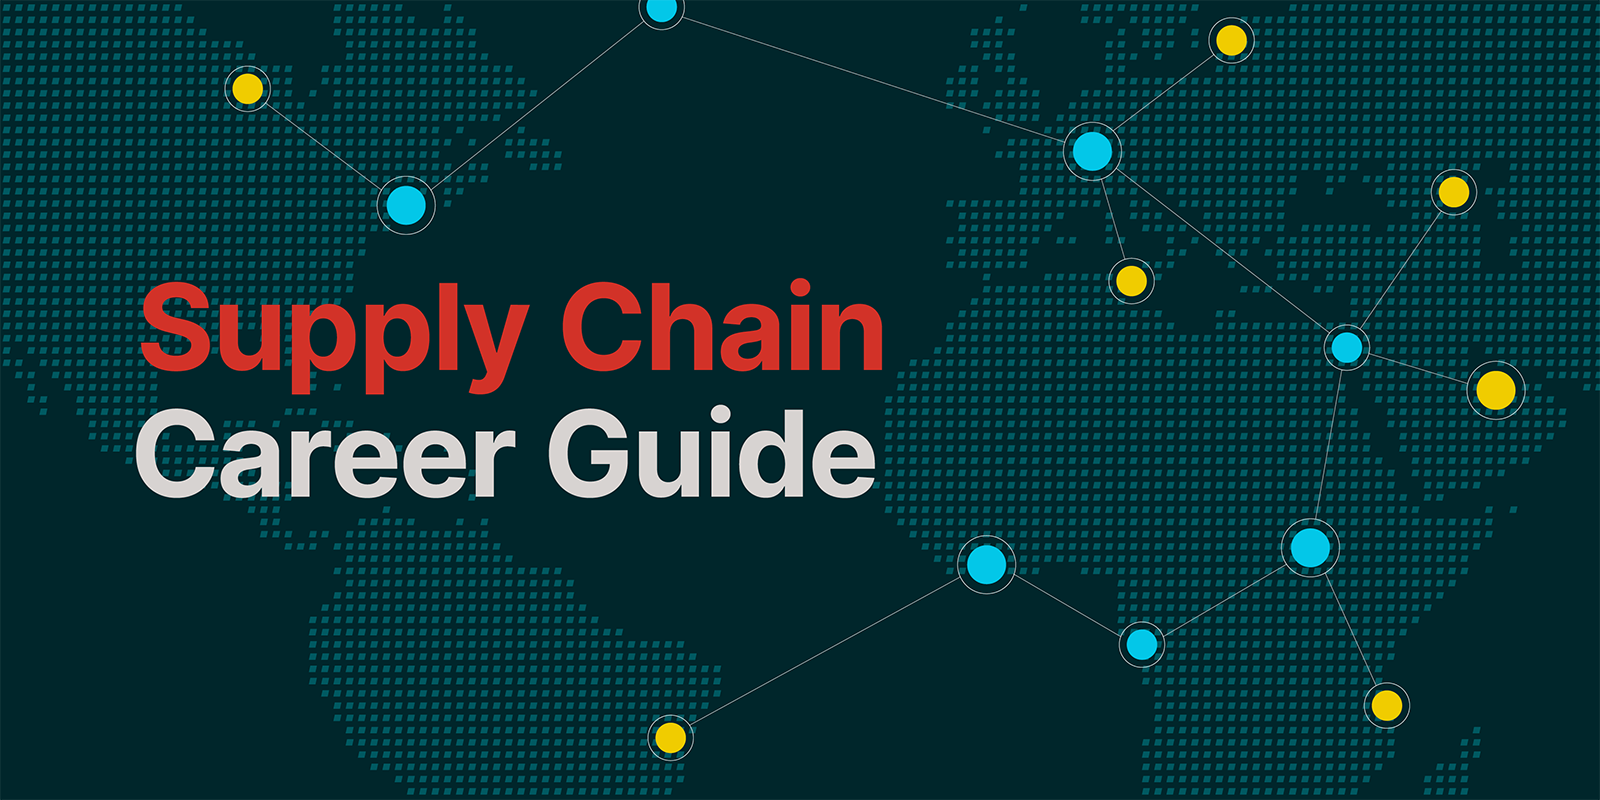 Supply chain career guide